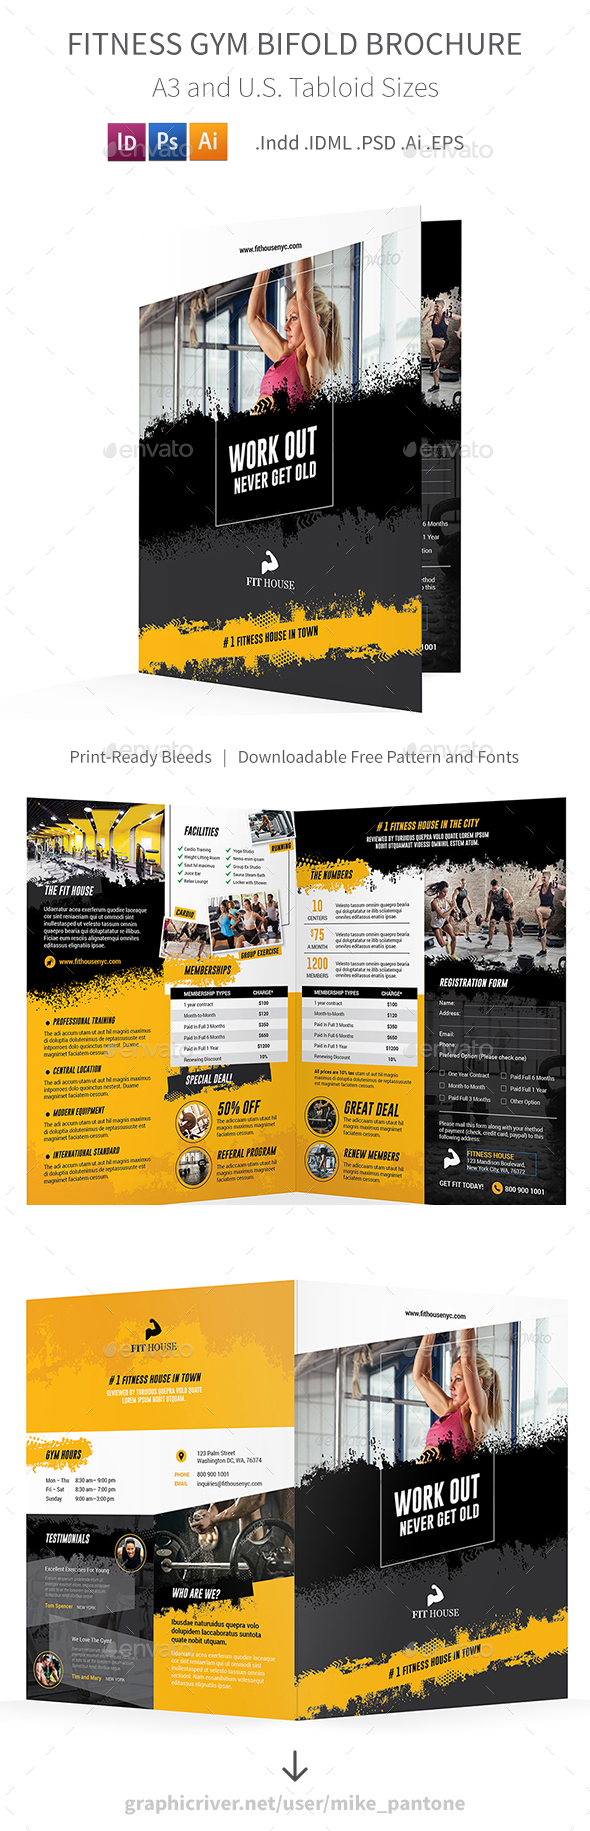 Fitness Bifold  Halffold Brochure   Brochures And Brochure Template